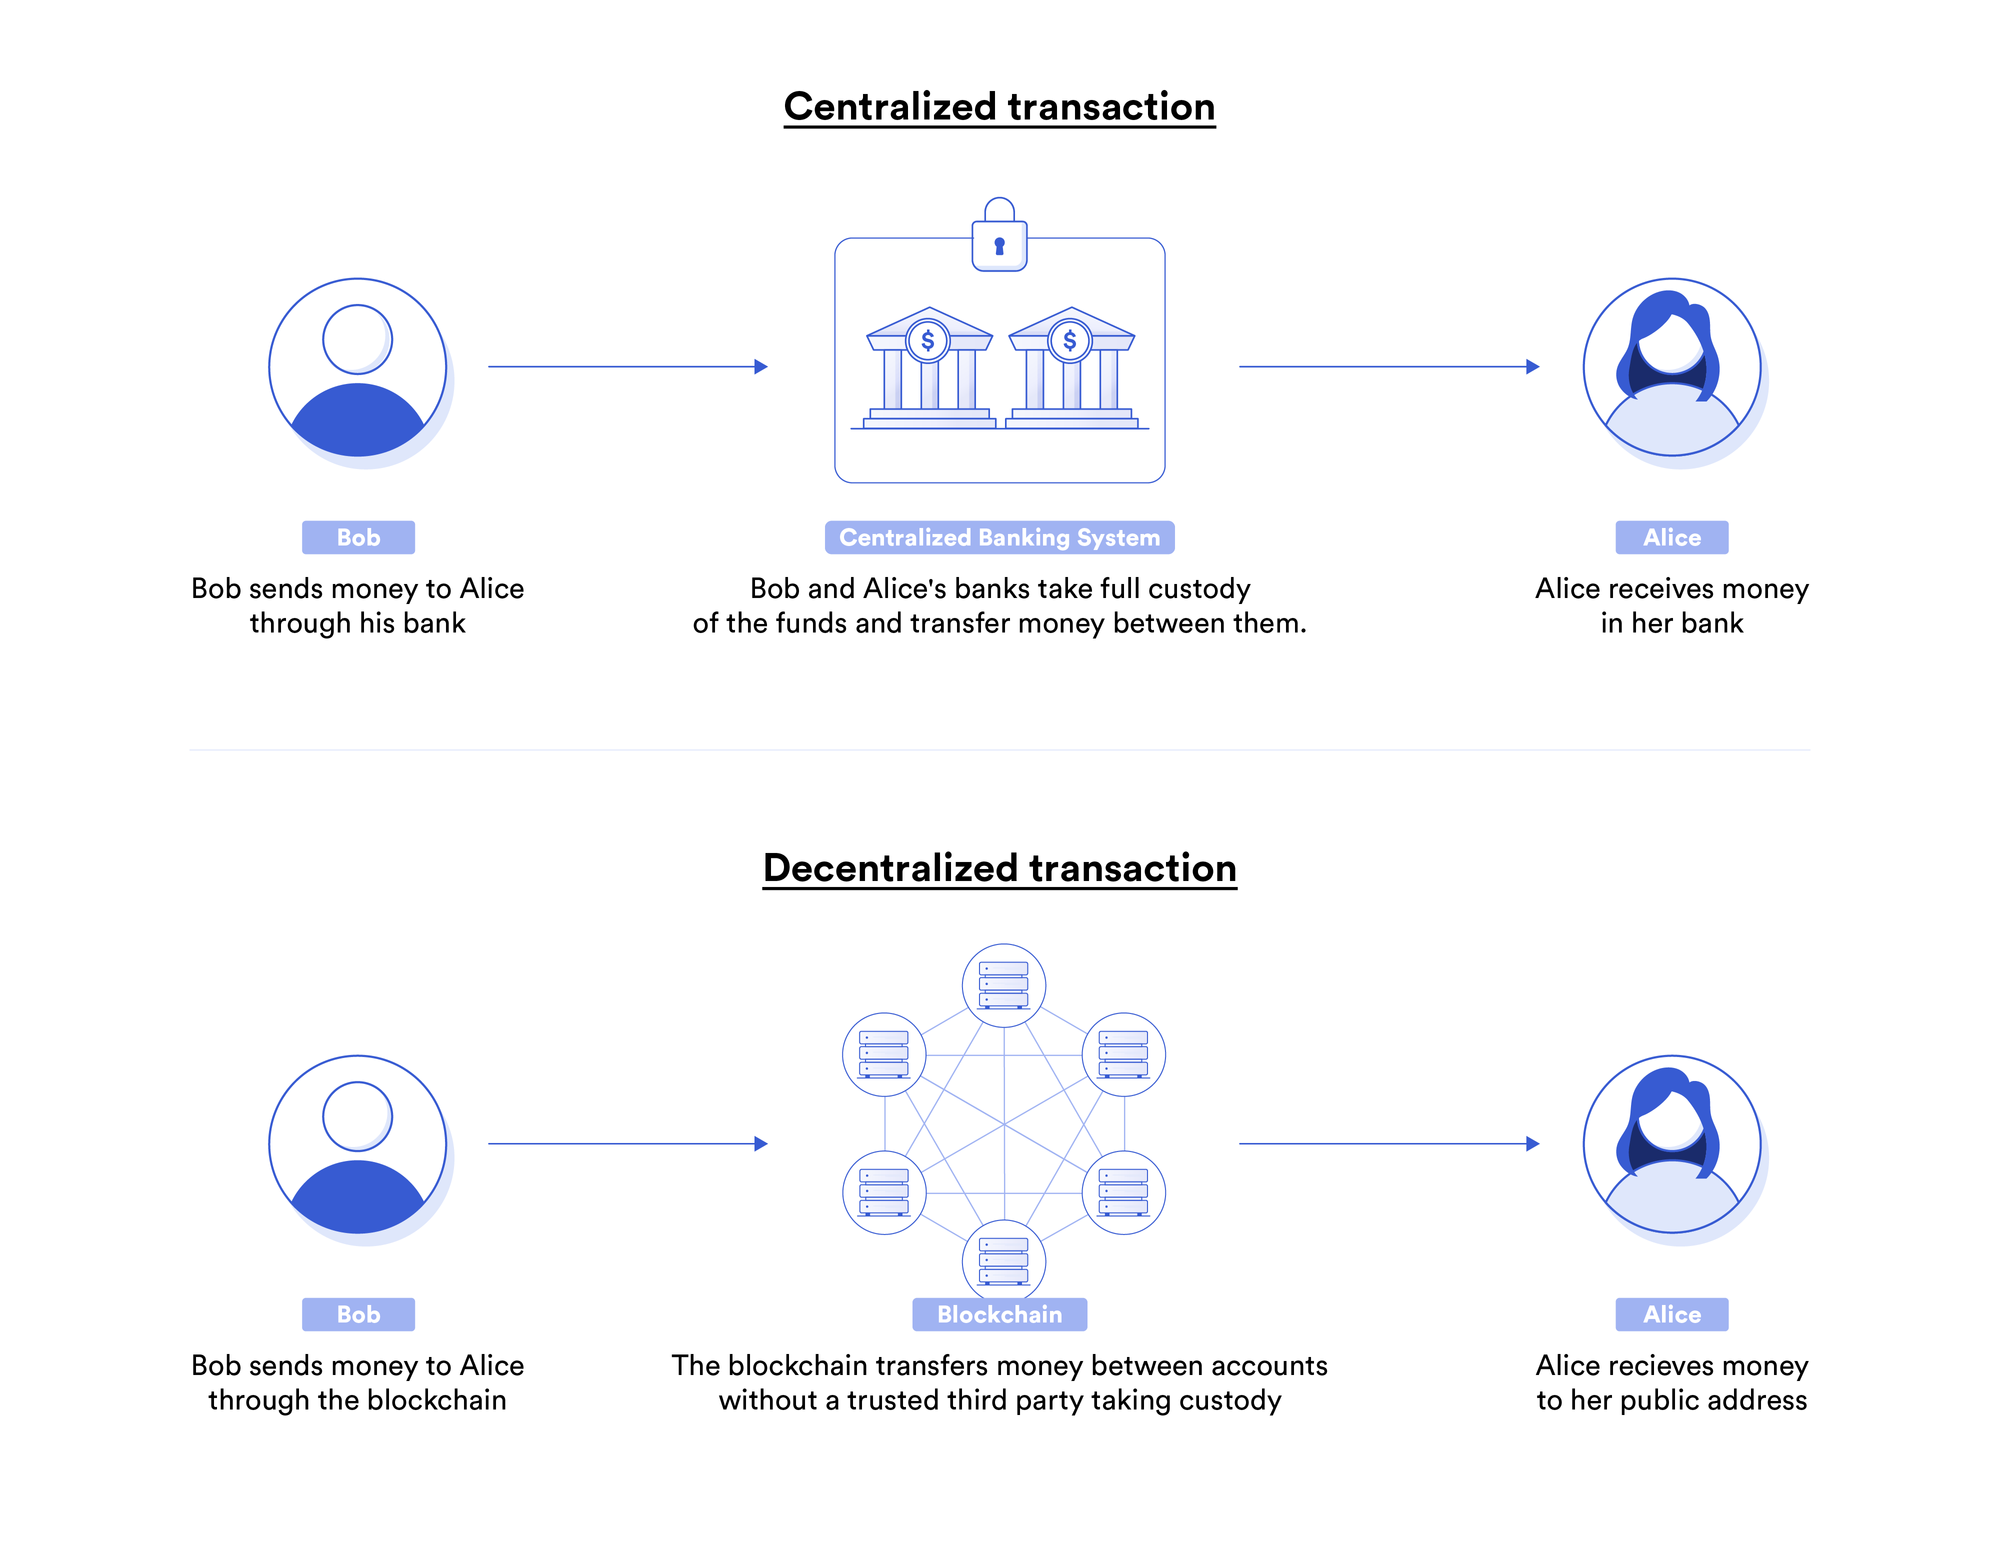 Centralized bank transactions vs. decentralized blockchain transactions